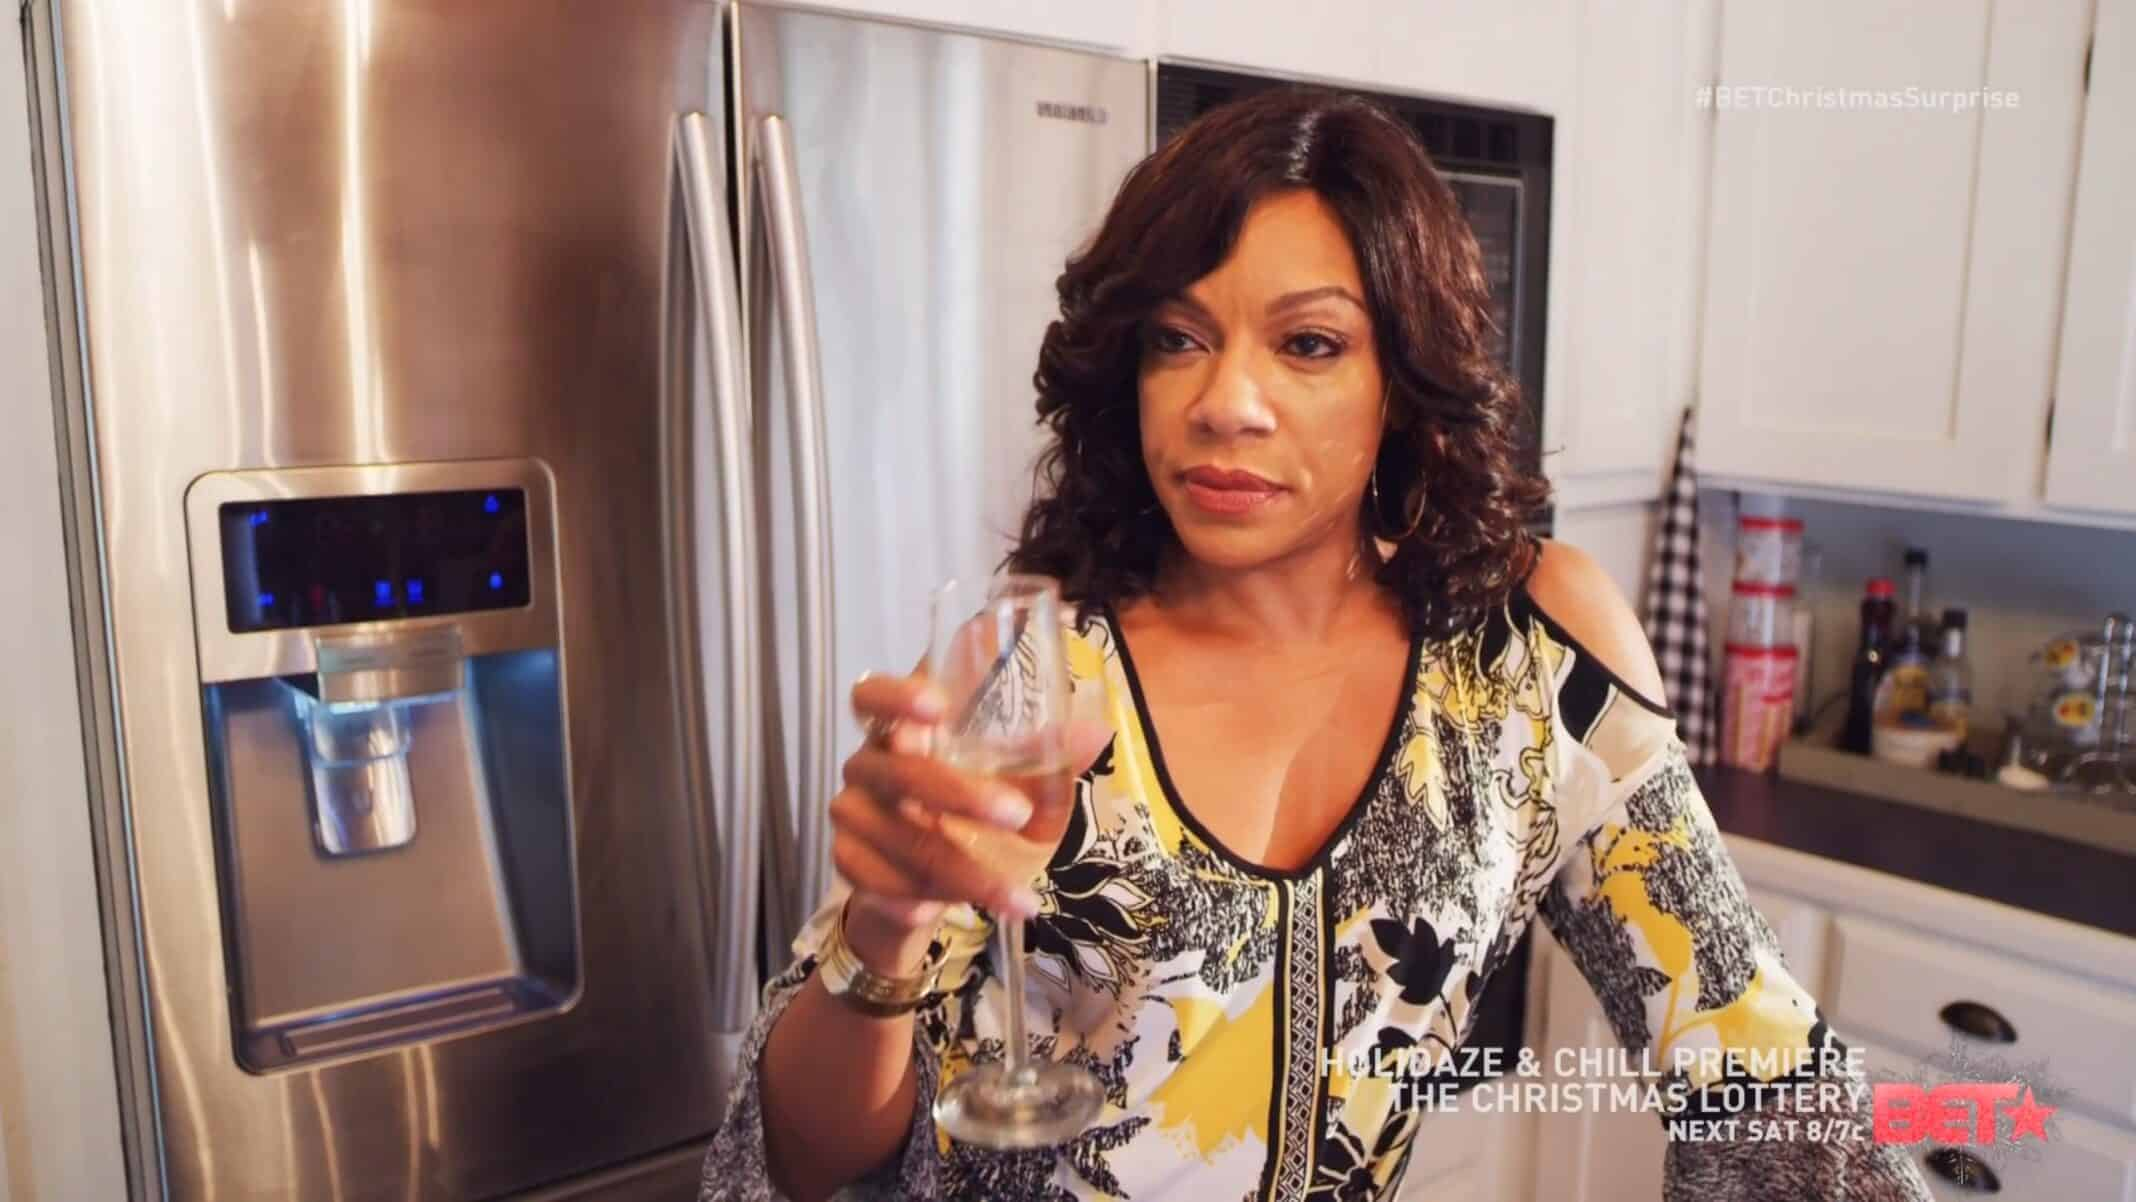 Tanya (Wendy Raquel Robinson) with a drink in hand